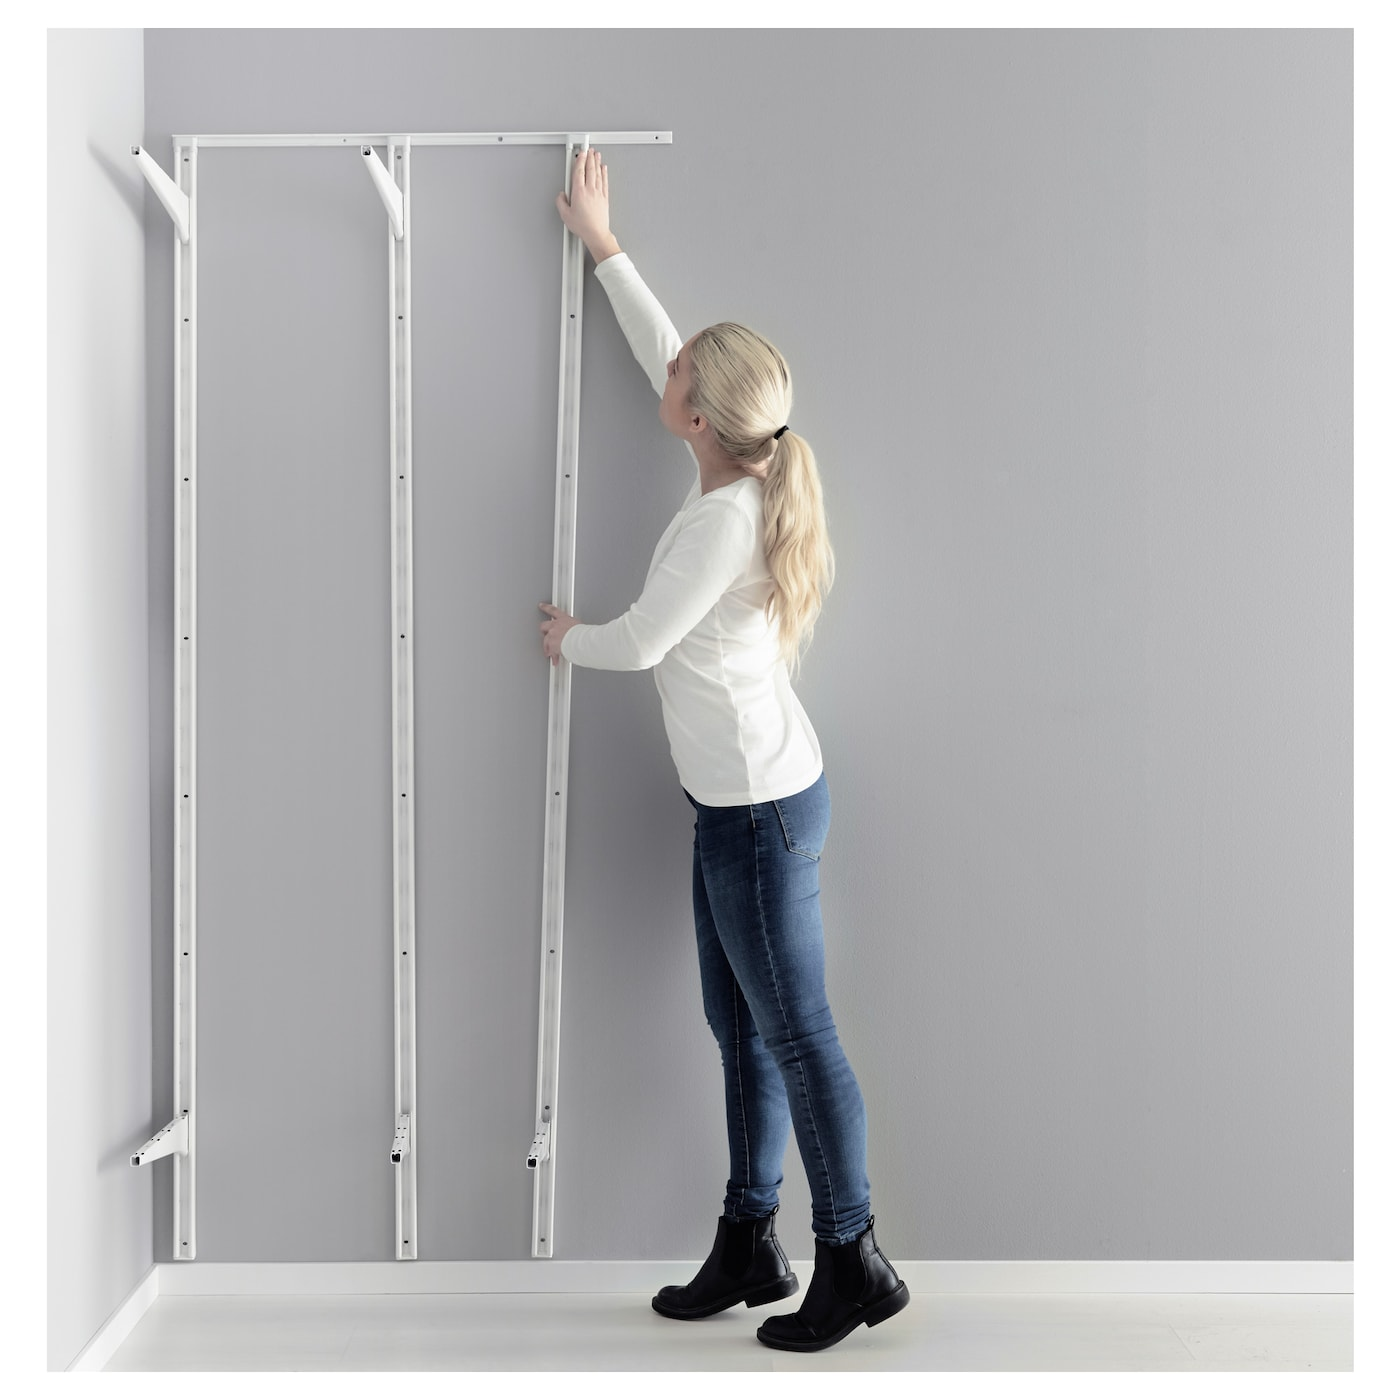 IKEA ALGOT mounting rail Can also be used in bathrooms and other damp areas indoors.